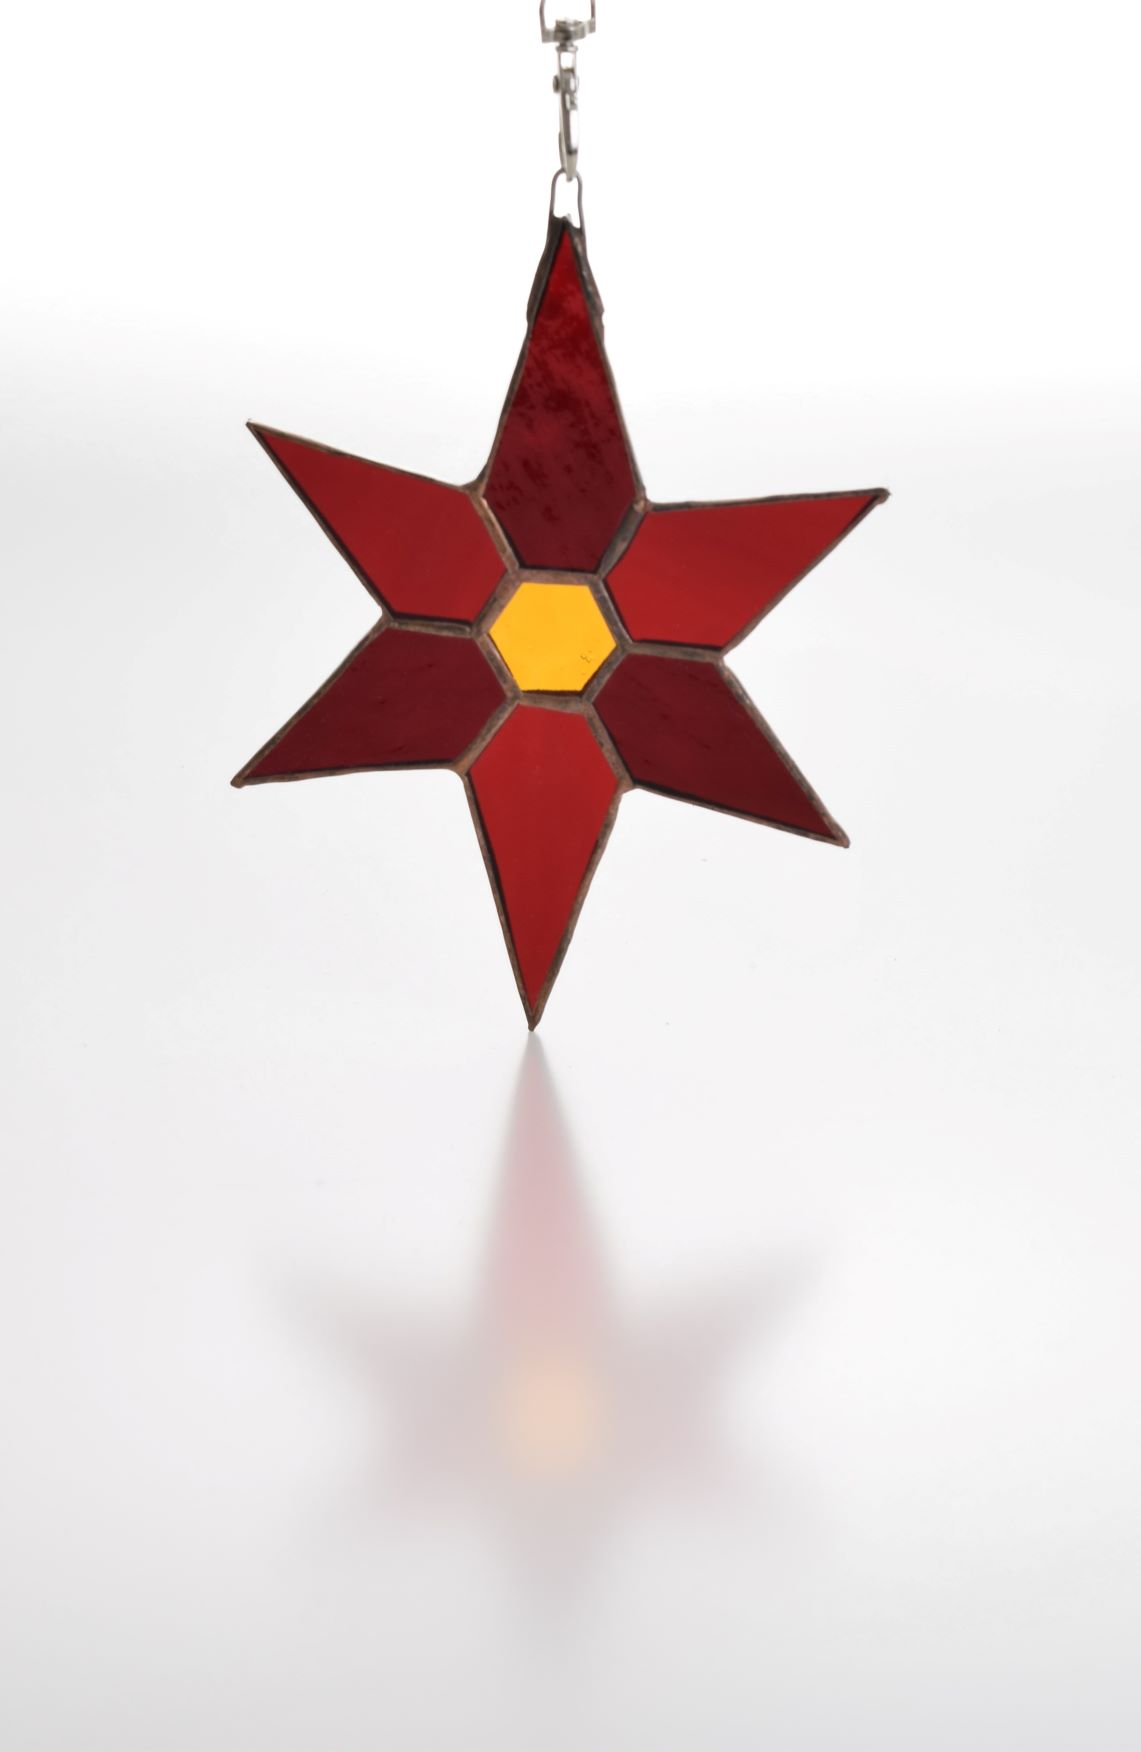 Copper foiled stained glass star in two shades of red glass with a hexagonal gold glass centre